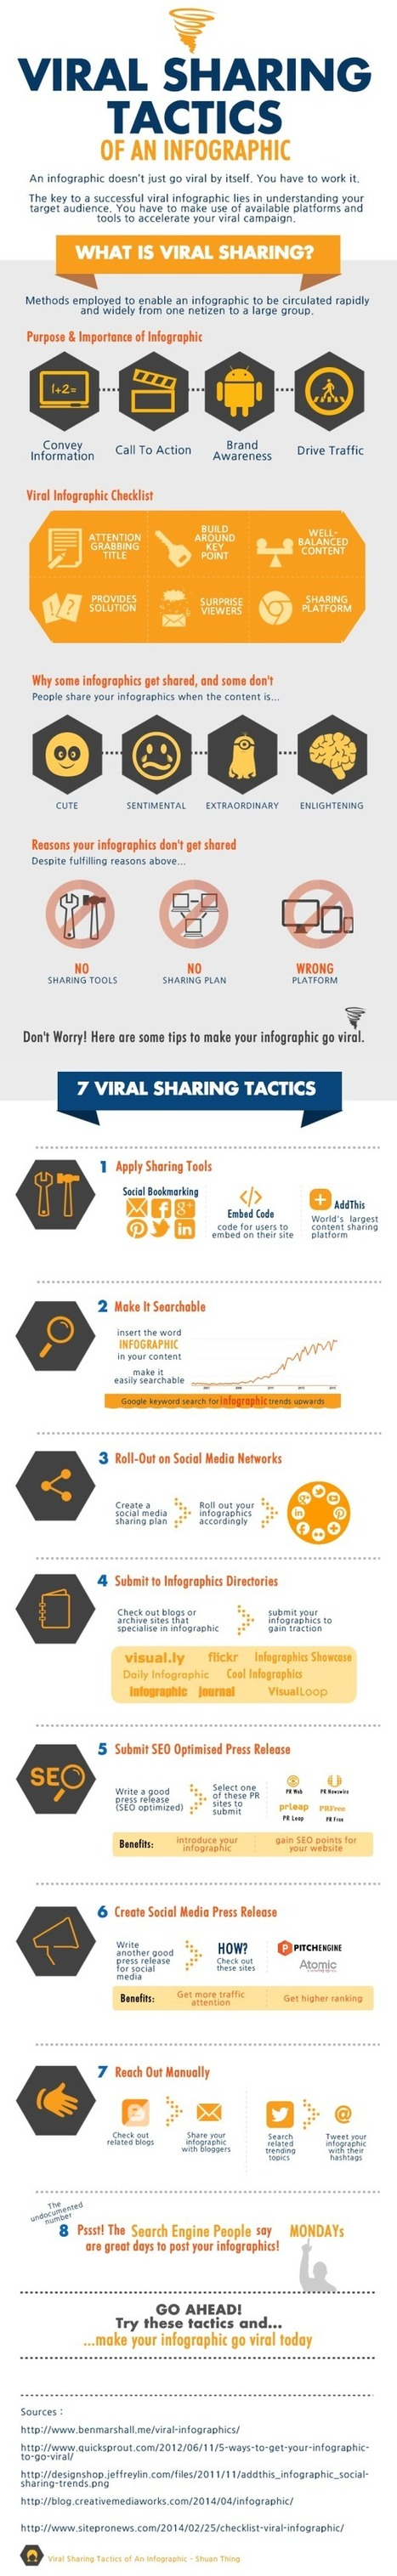 Viral Sharing Tactics of an Infographic - what and how | Inbound marketing, social and SEO | Scoop.it